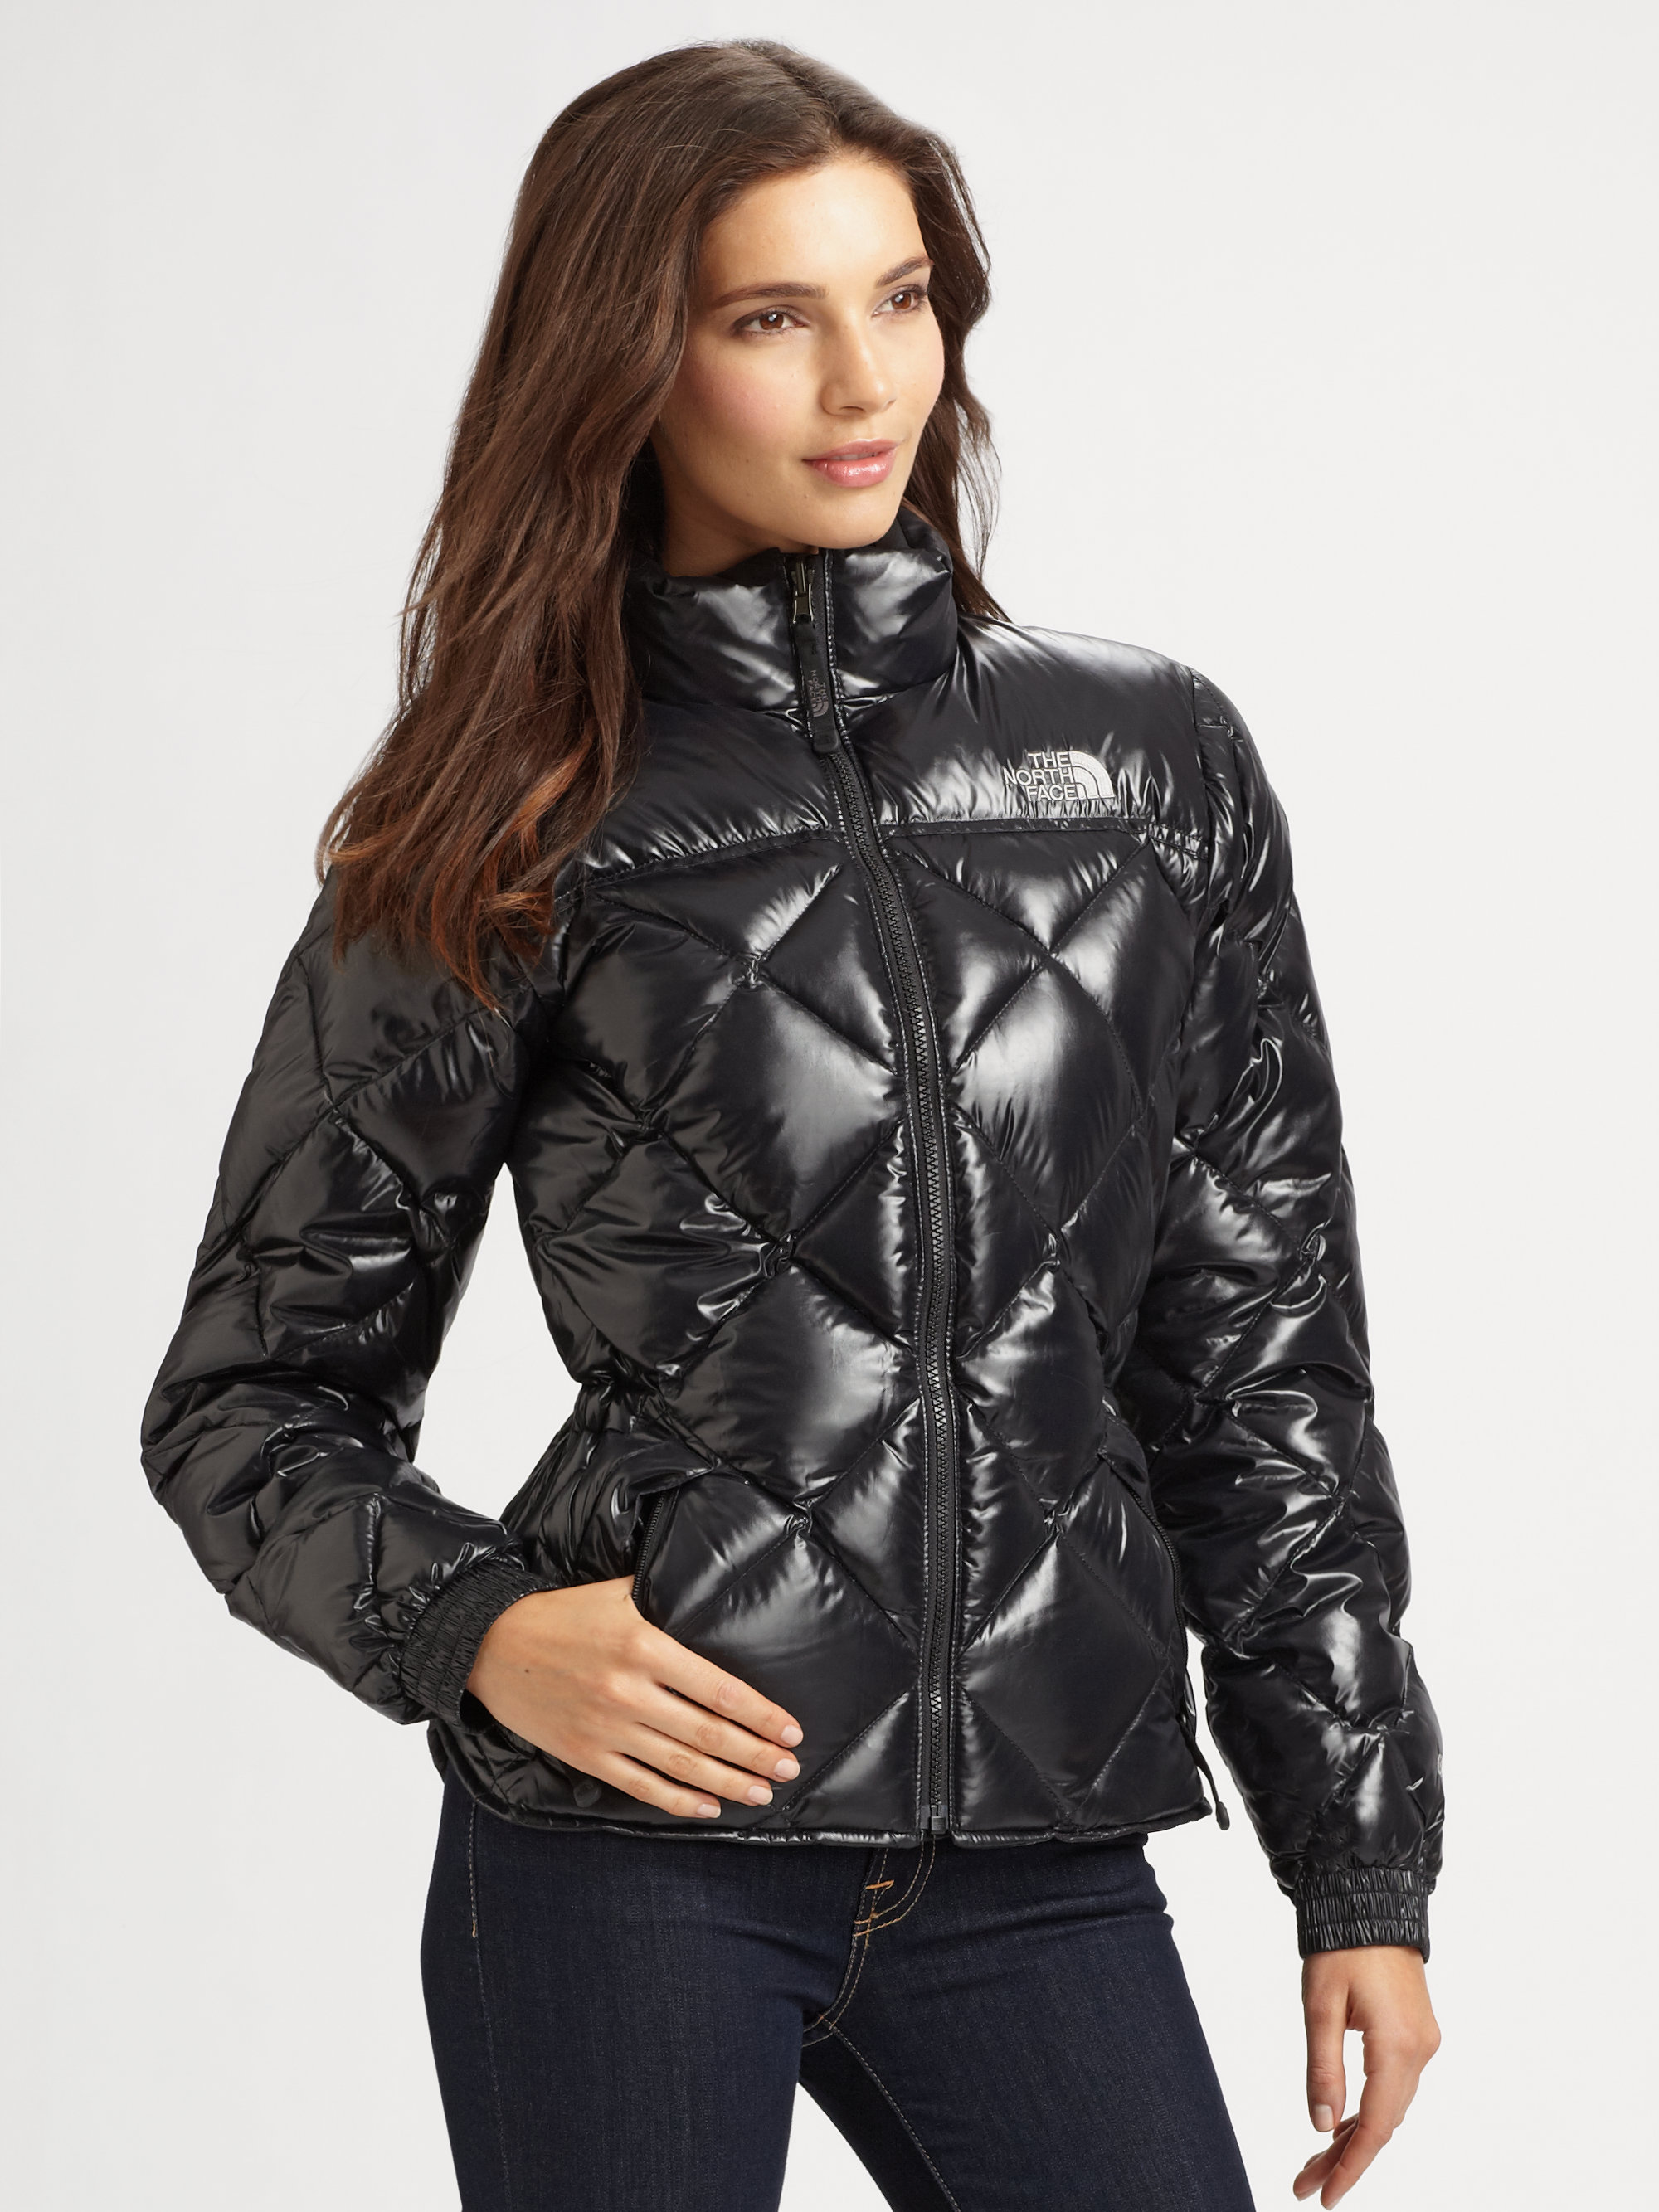 Lyst - The north face Quilted Puffer Jacket in Black